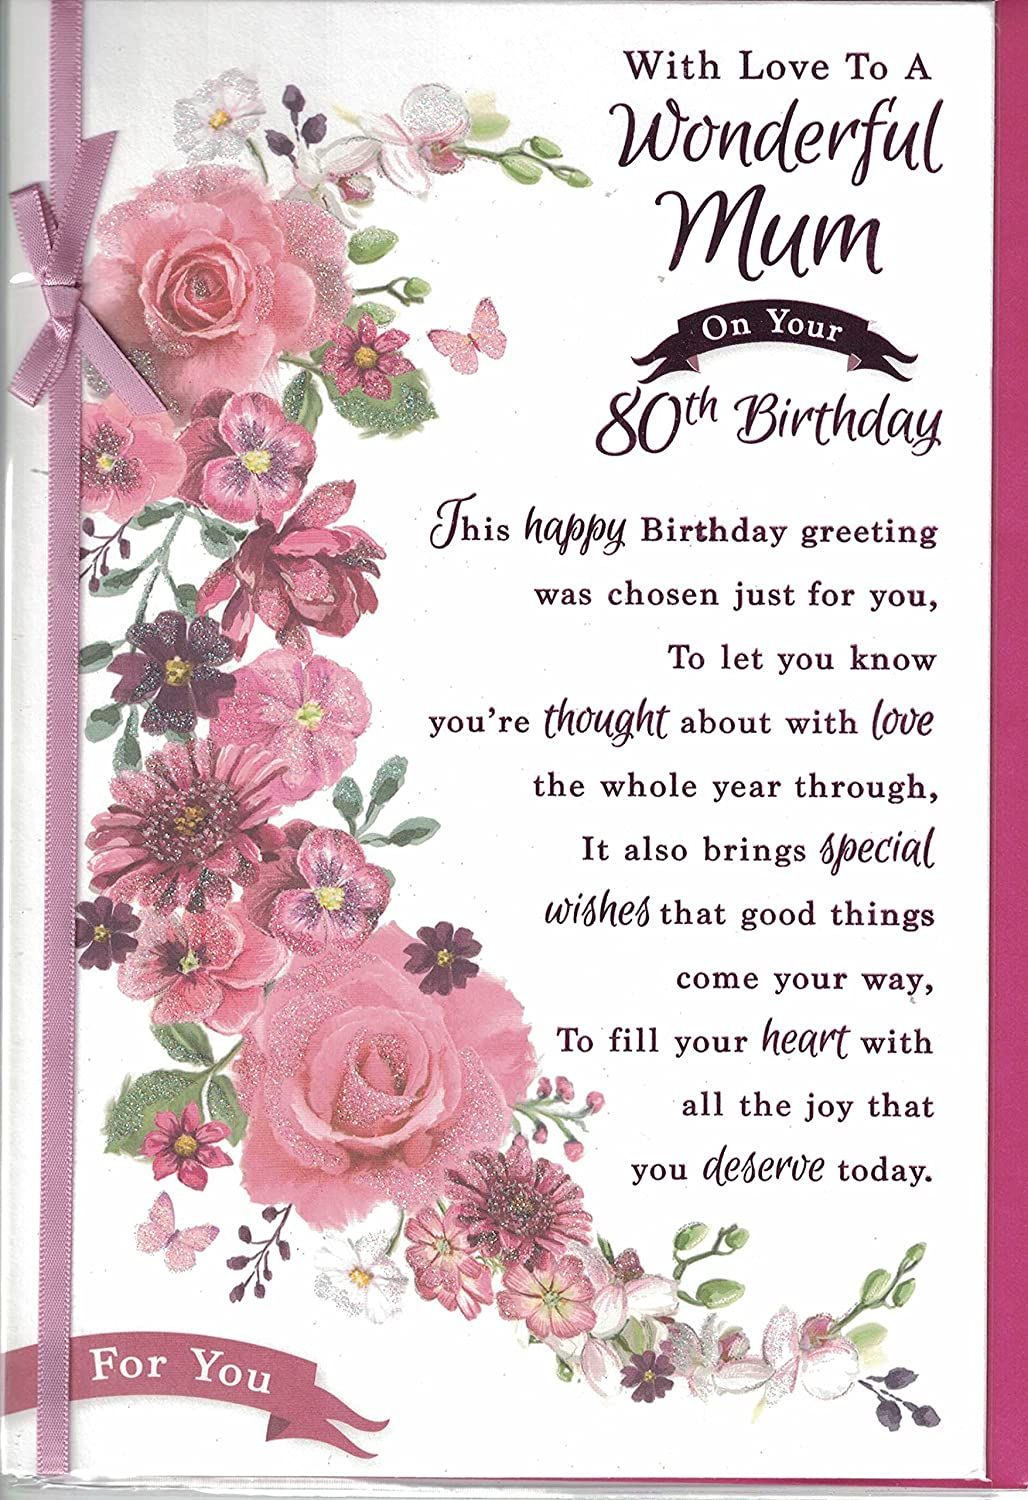 Mum 80th Birthday Card On Your 80th Birthday Mum with Love – 80th Birthday Cards for Mum